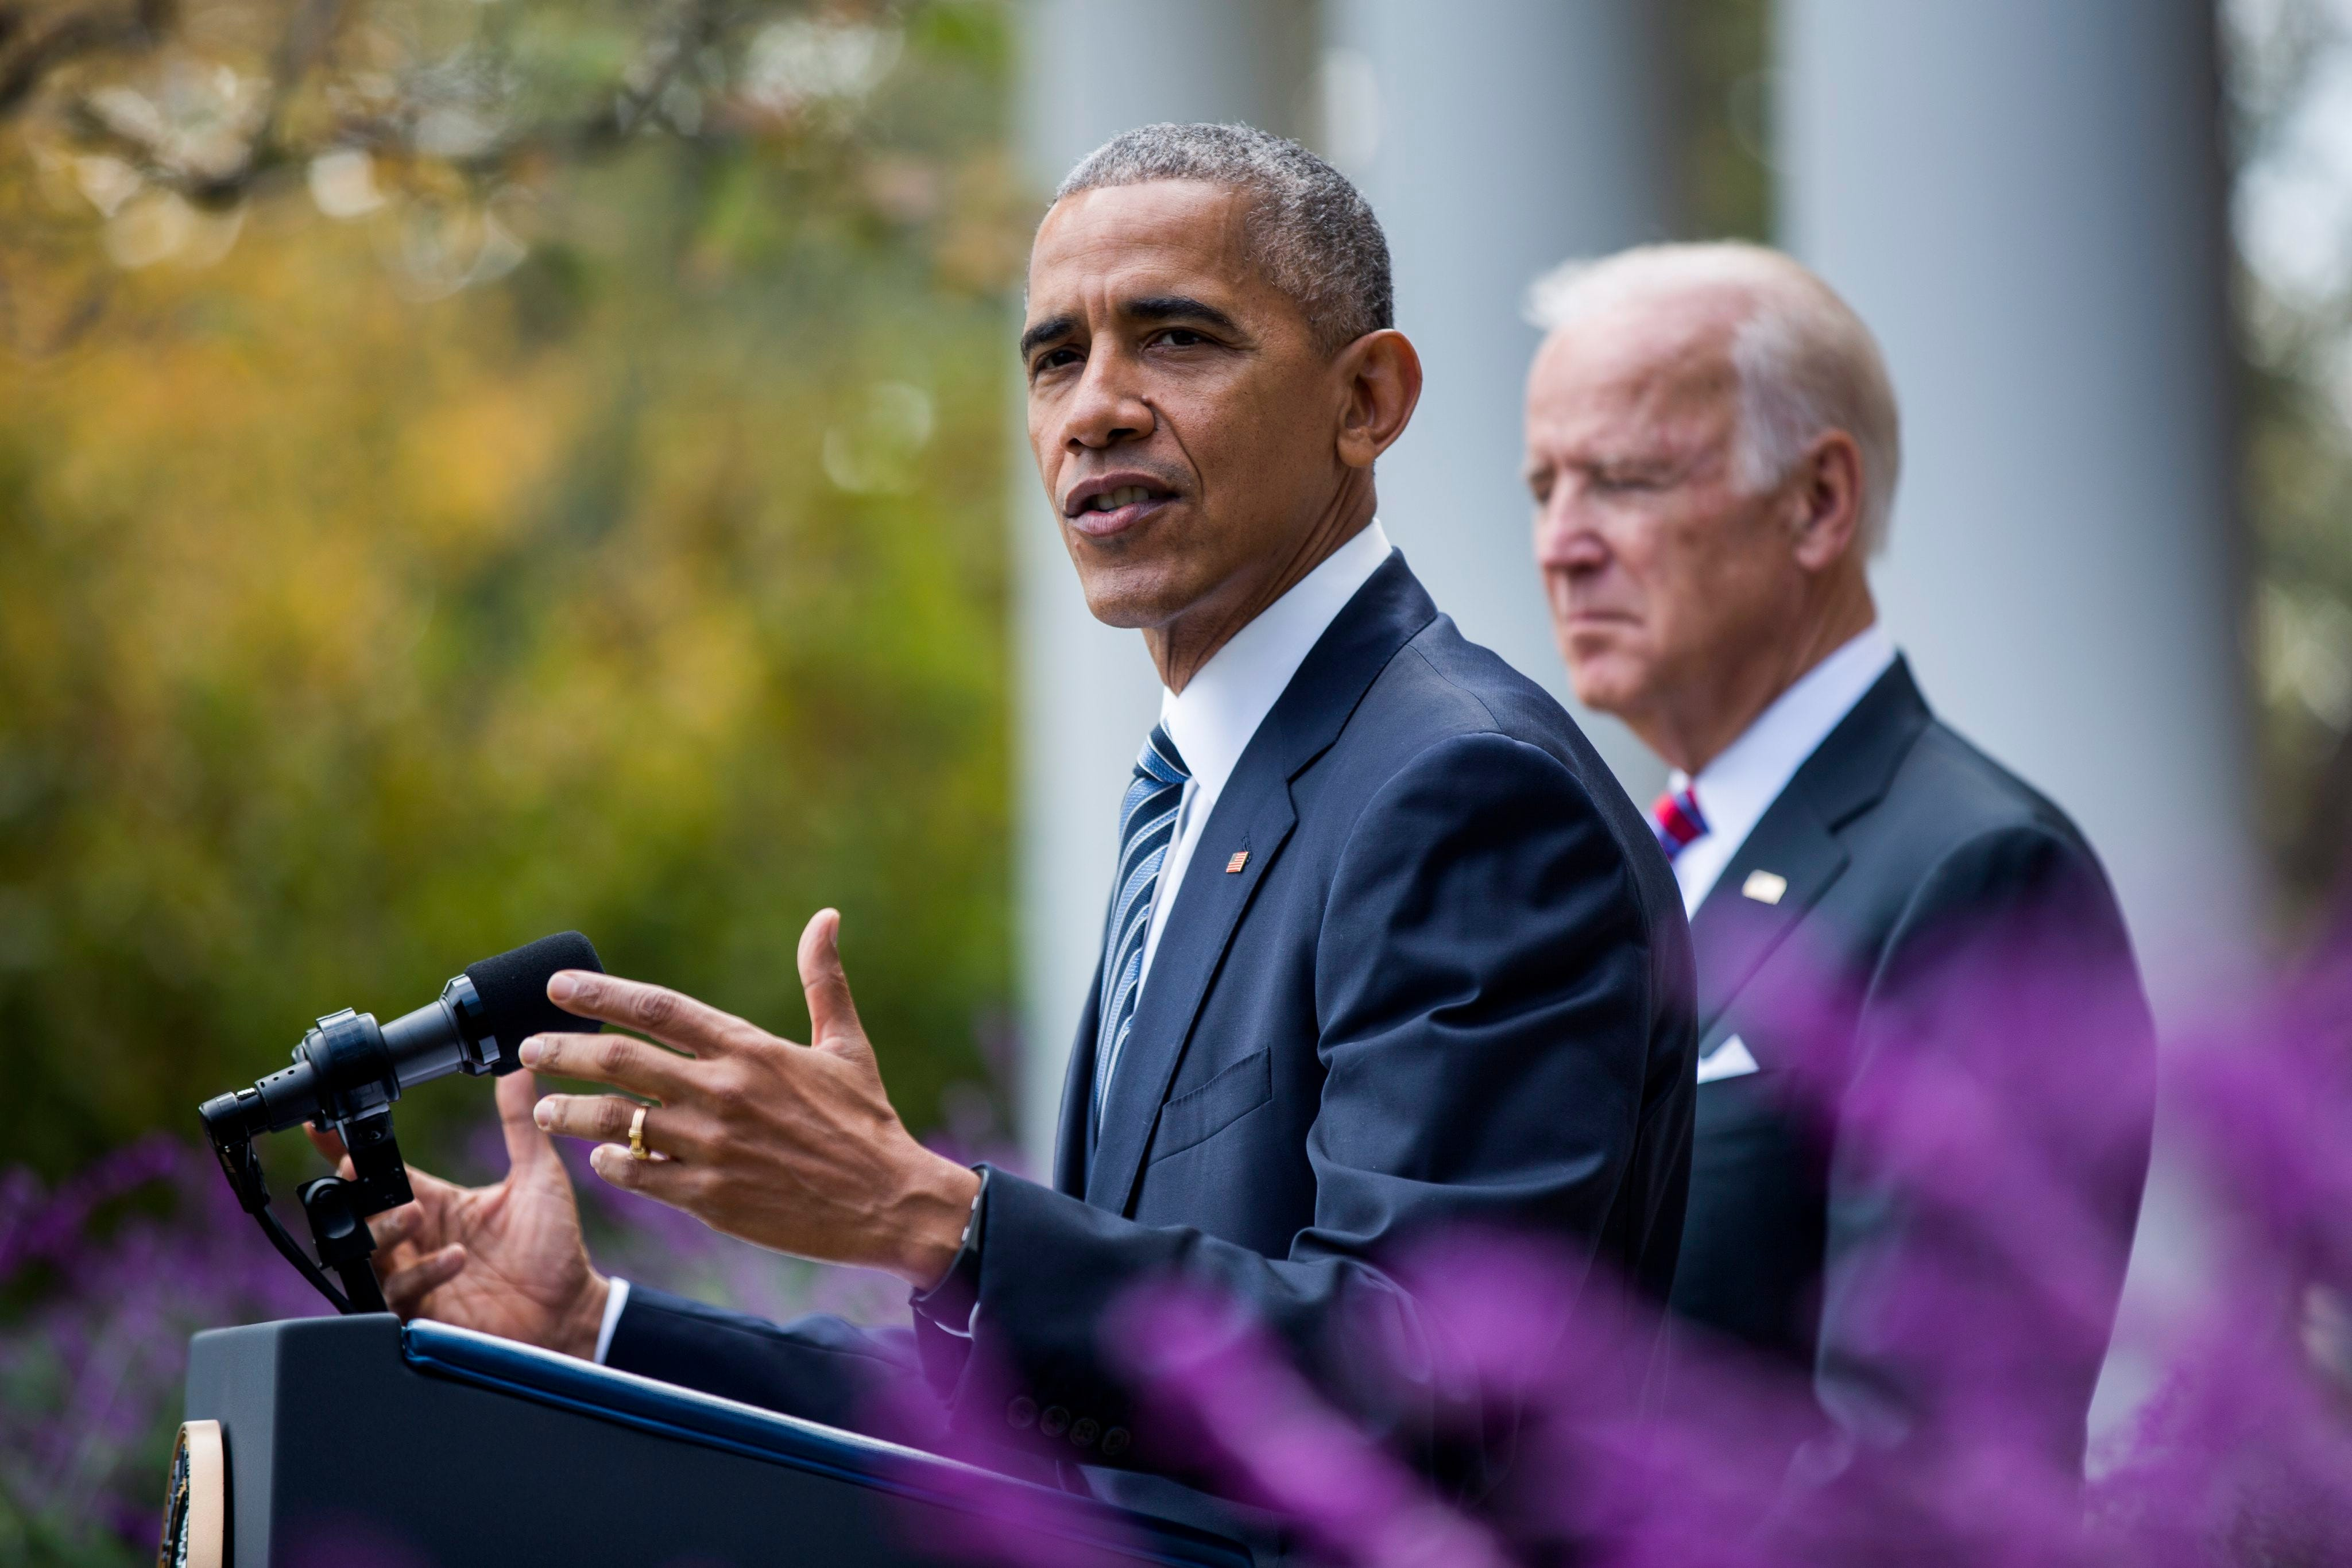 Him Tour 2020 Usa Biden says he asked Obama not to endorse him in 2020 presidential race